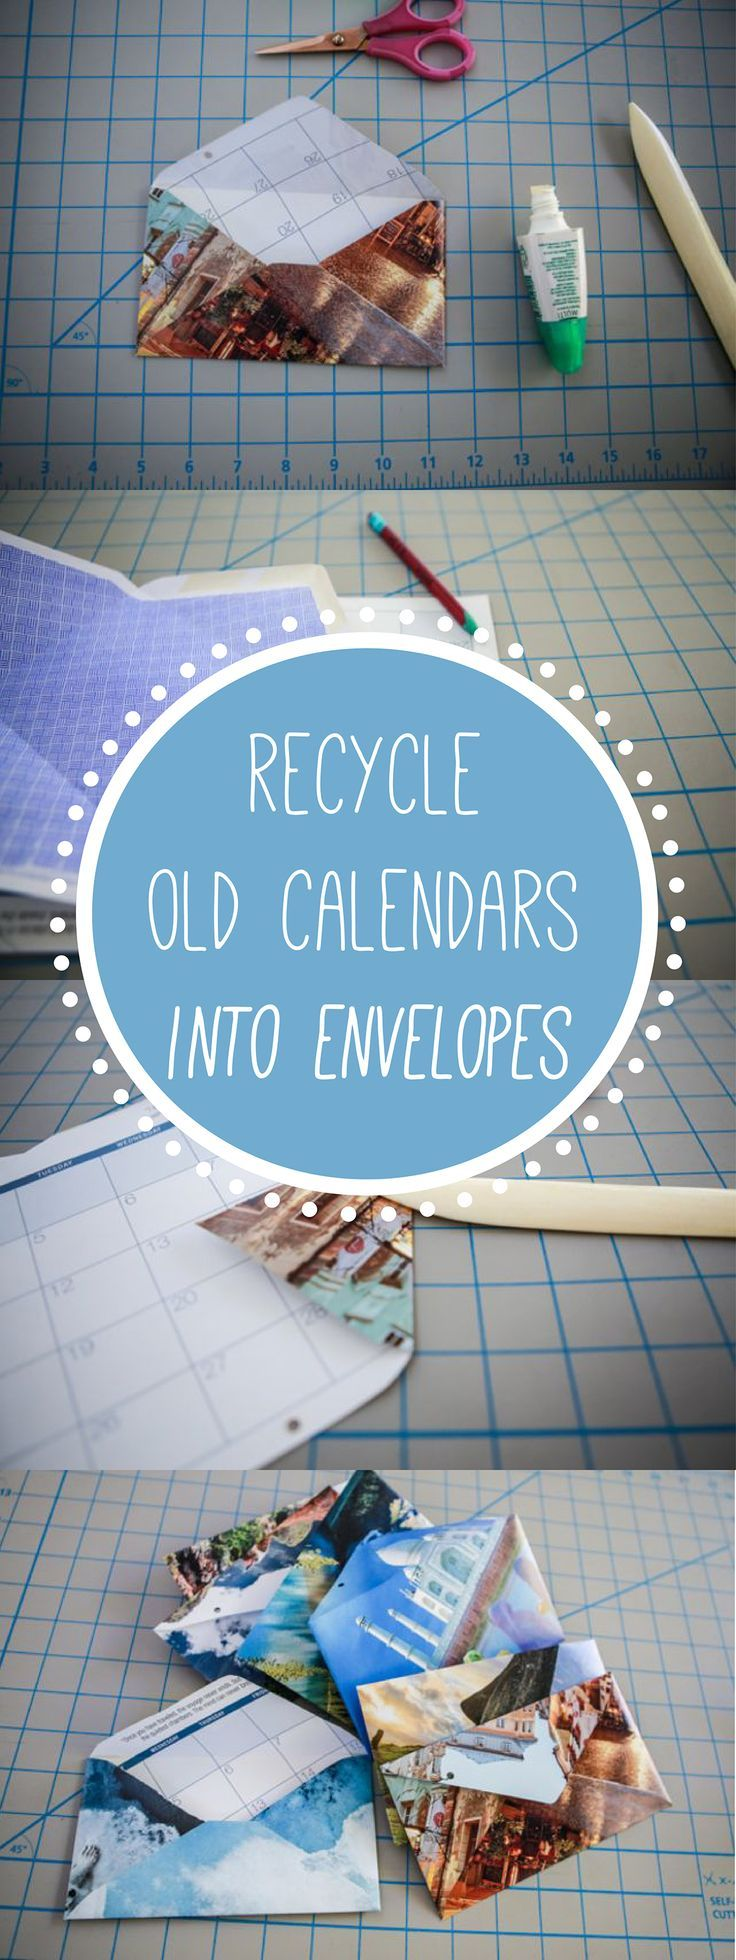 Great idea! Recycle old calendars into super simple envelopes. Who wouldn't want…